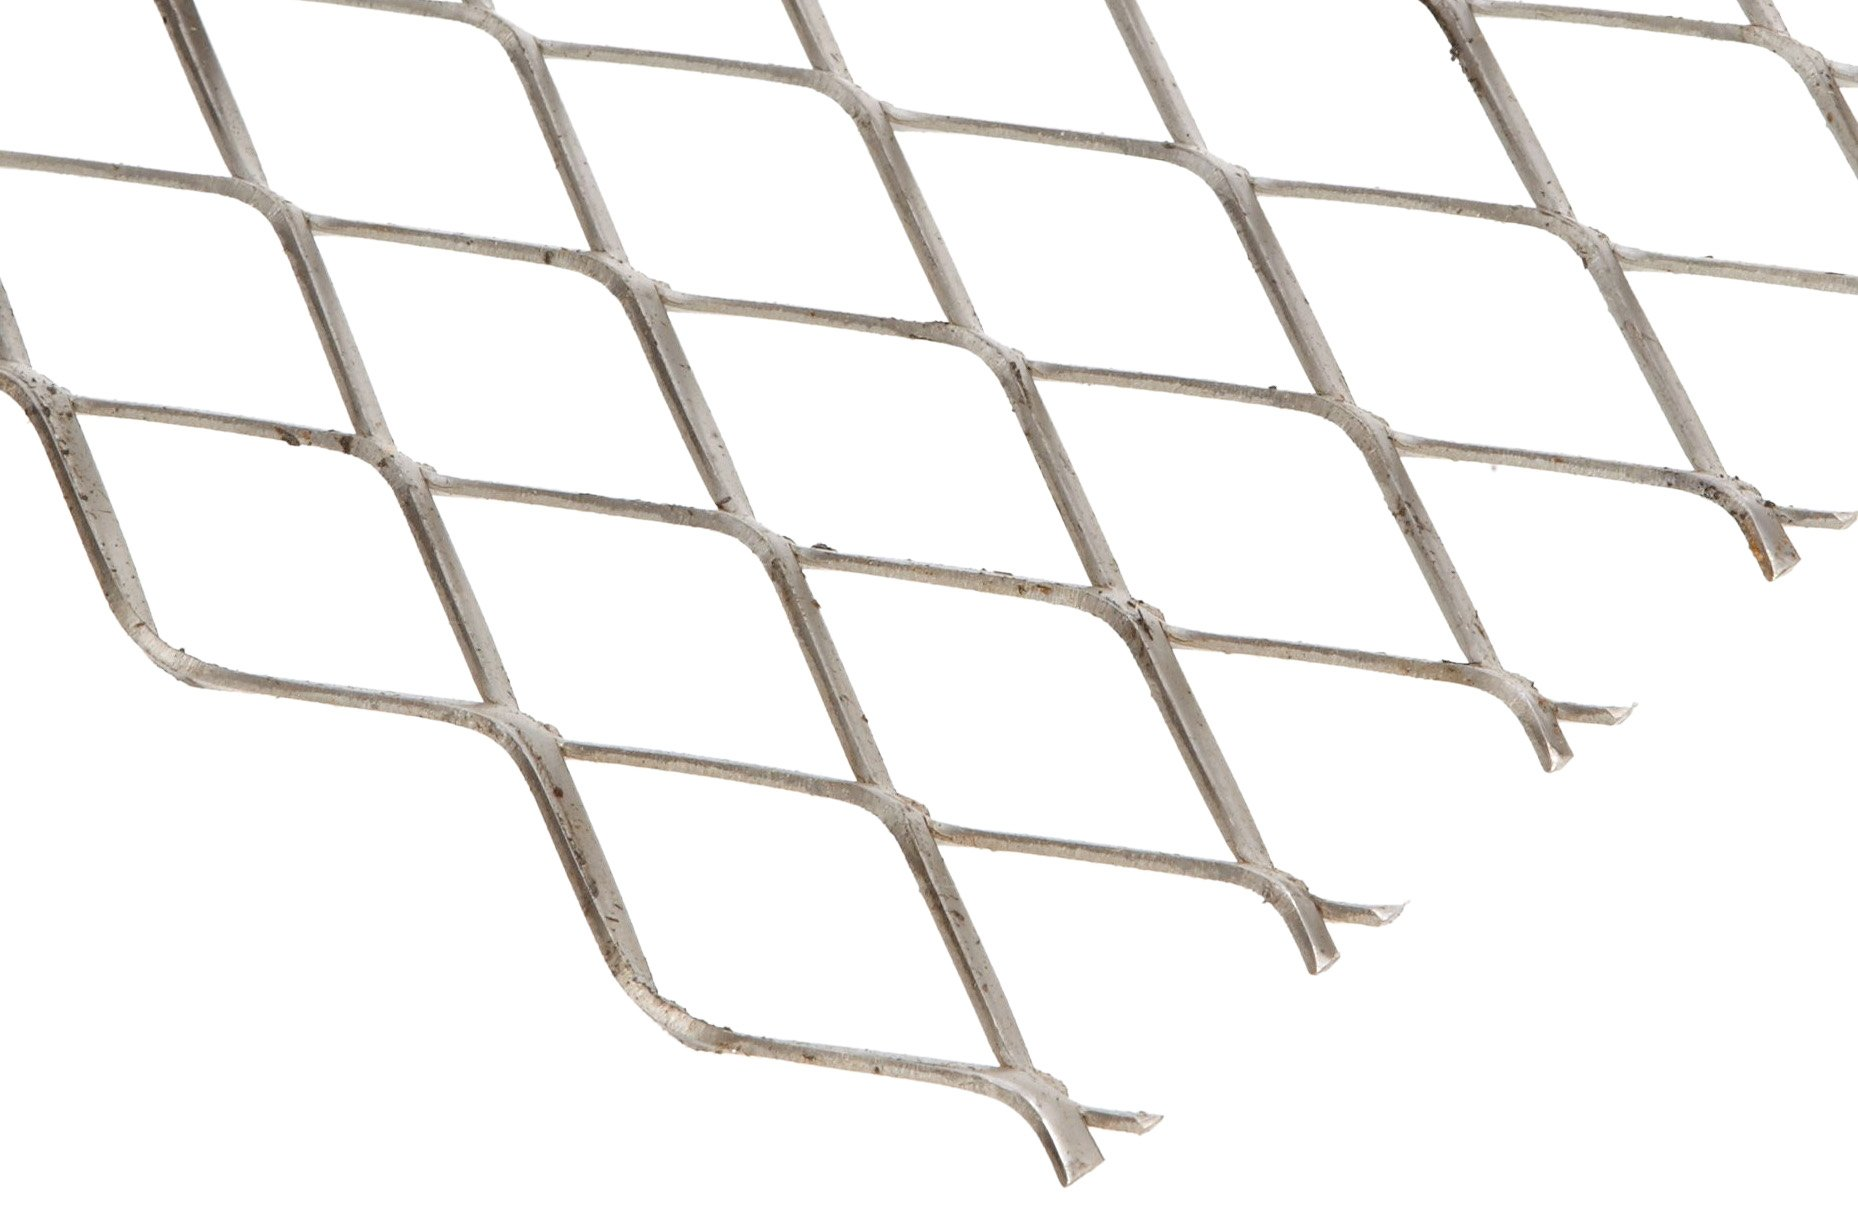 304 Stainless Steel Raised Expanded Sheet, Unpolished (Mill) Finish, 24'' Width, 24'' Length, 0.923'' SWD x 2.00'' LWD Opening, 16 Gauge